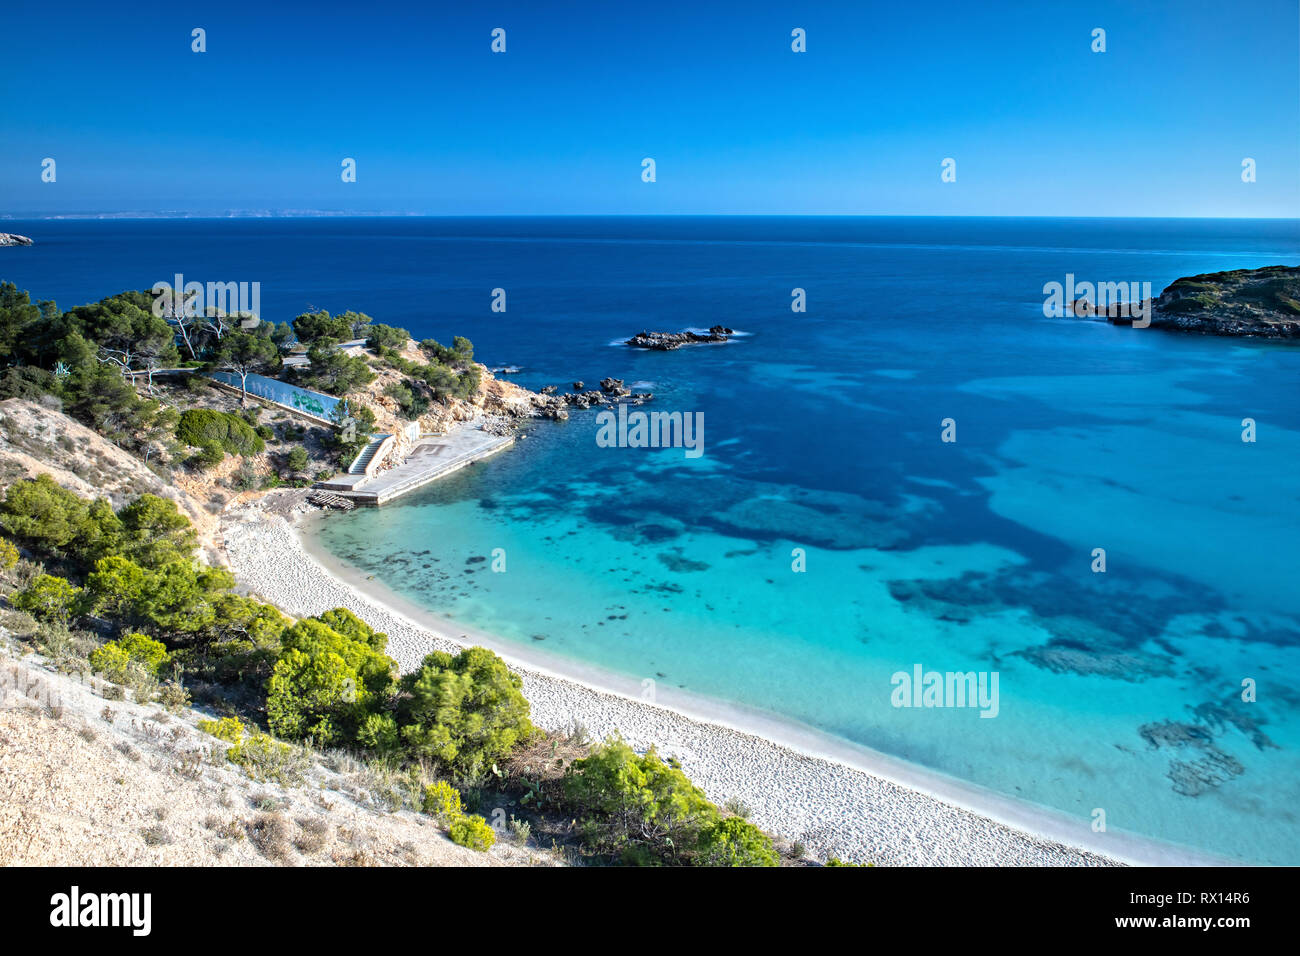 The Bay of Portals Nous in Mallorca, Spain - Stock Image